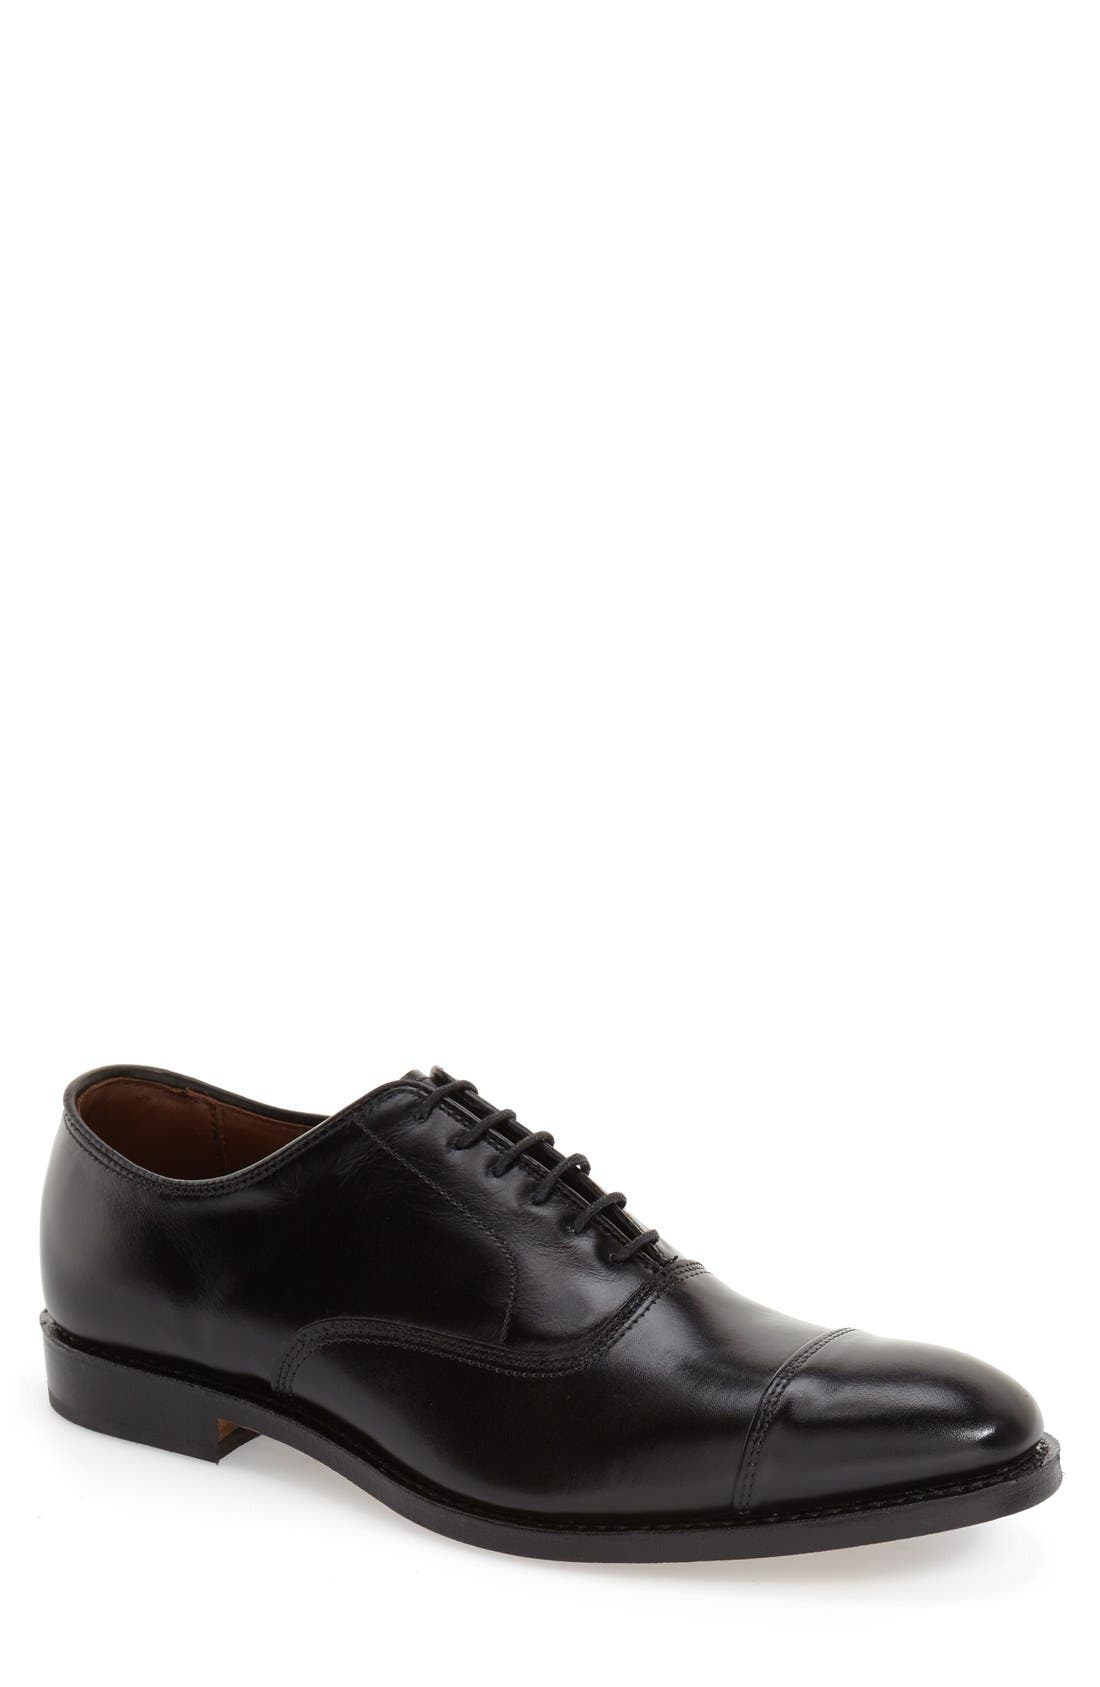 Park Avenue Oxford,                         Main,                         color, BLACK